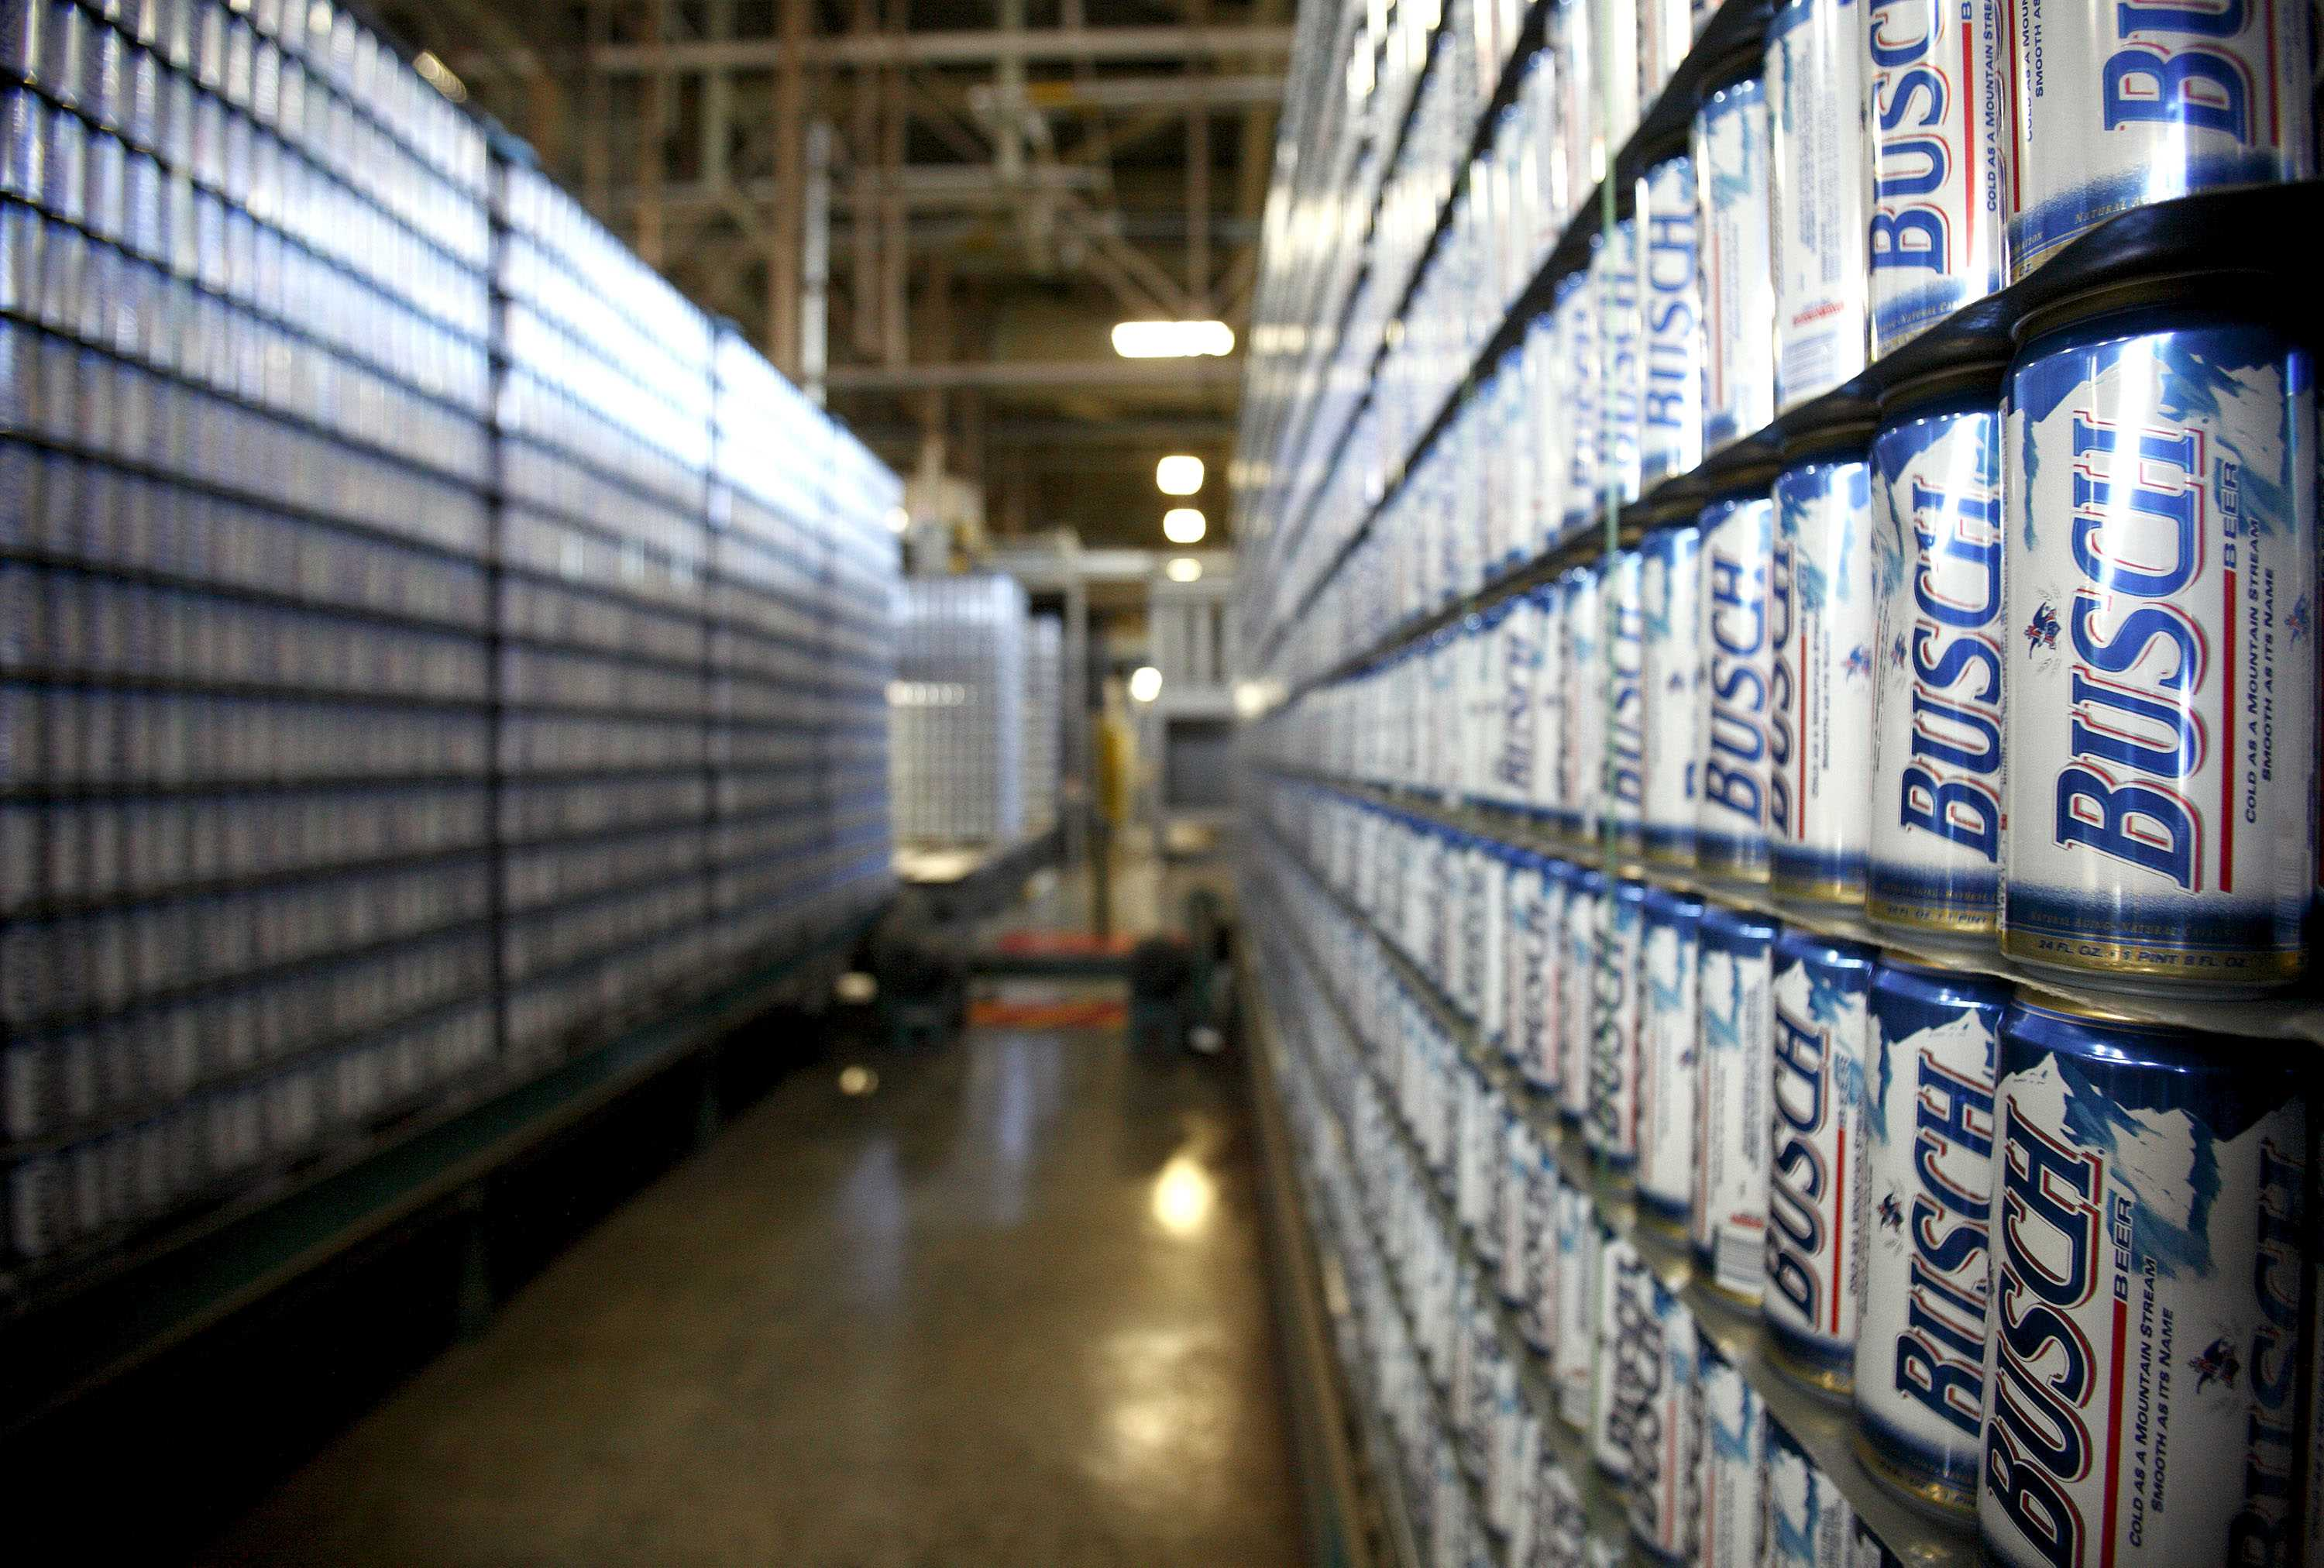 Former Anheuser-Busch workers win enhanced pension benefits after subsidiary sale